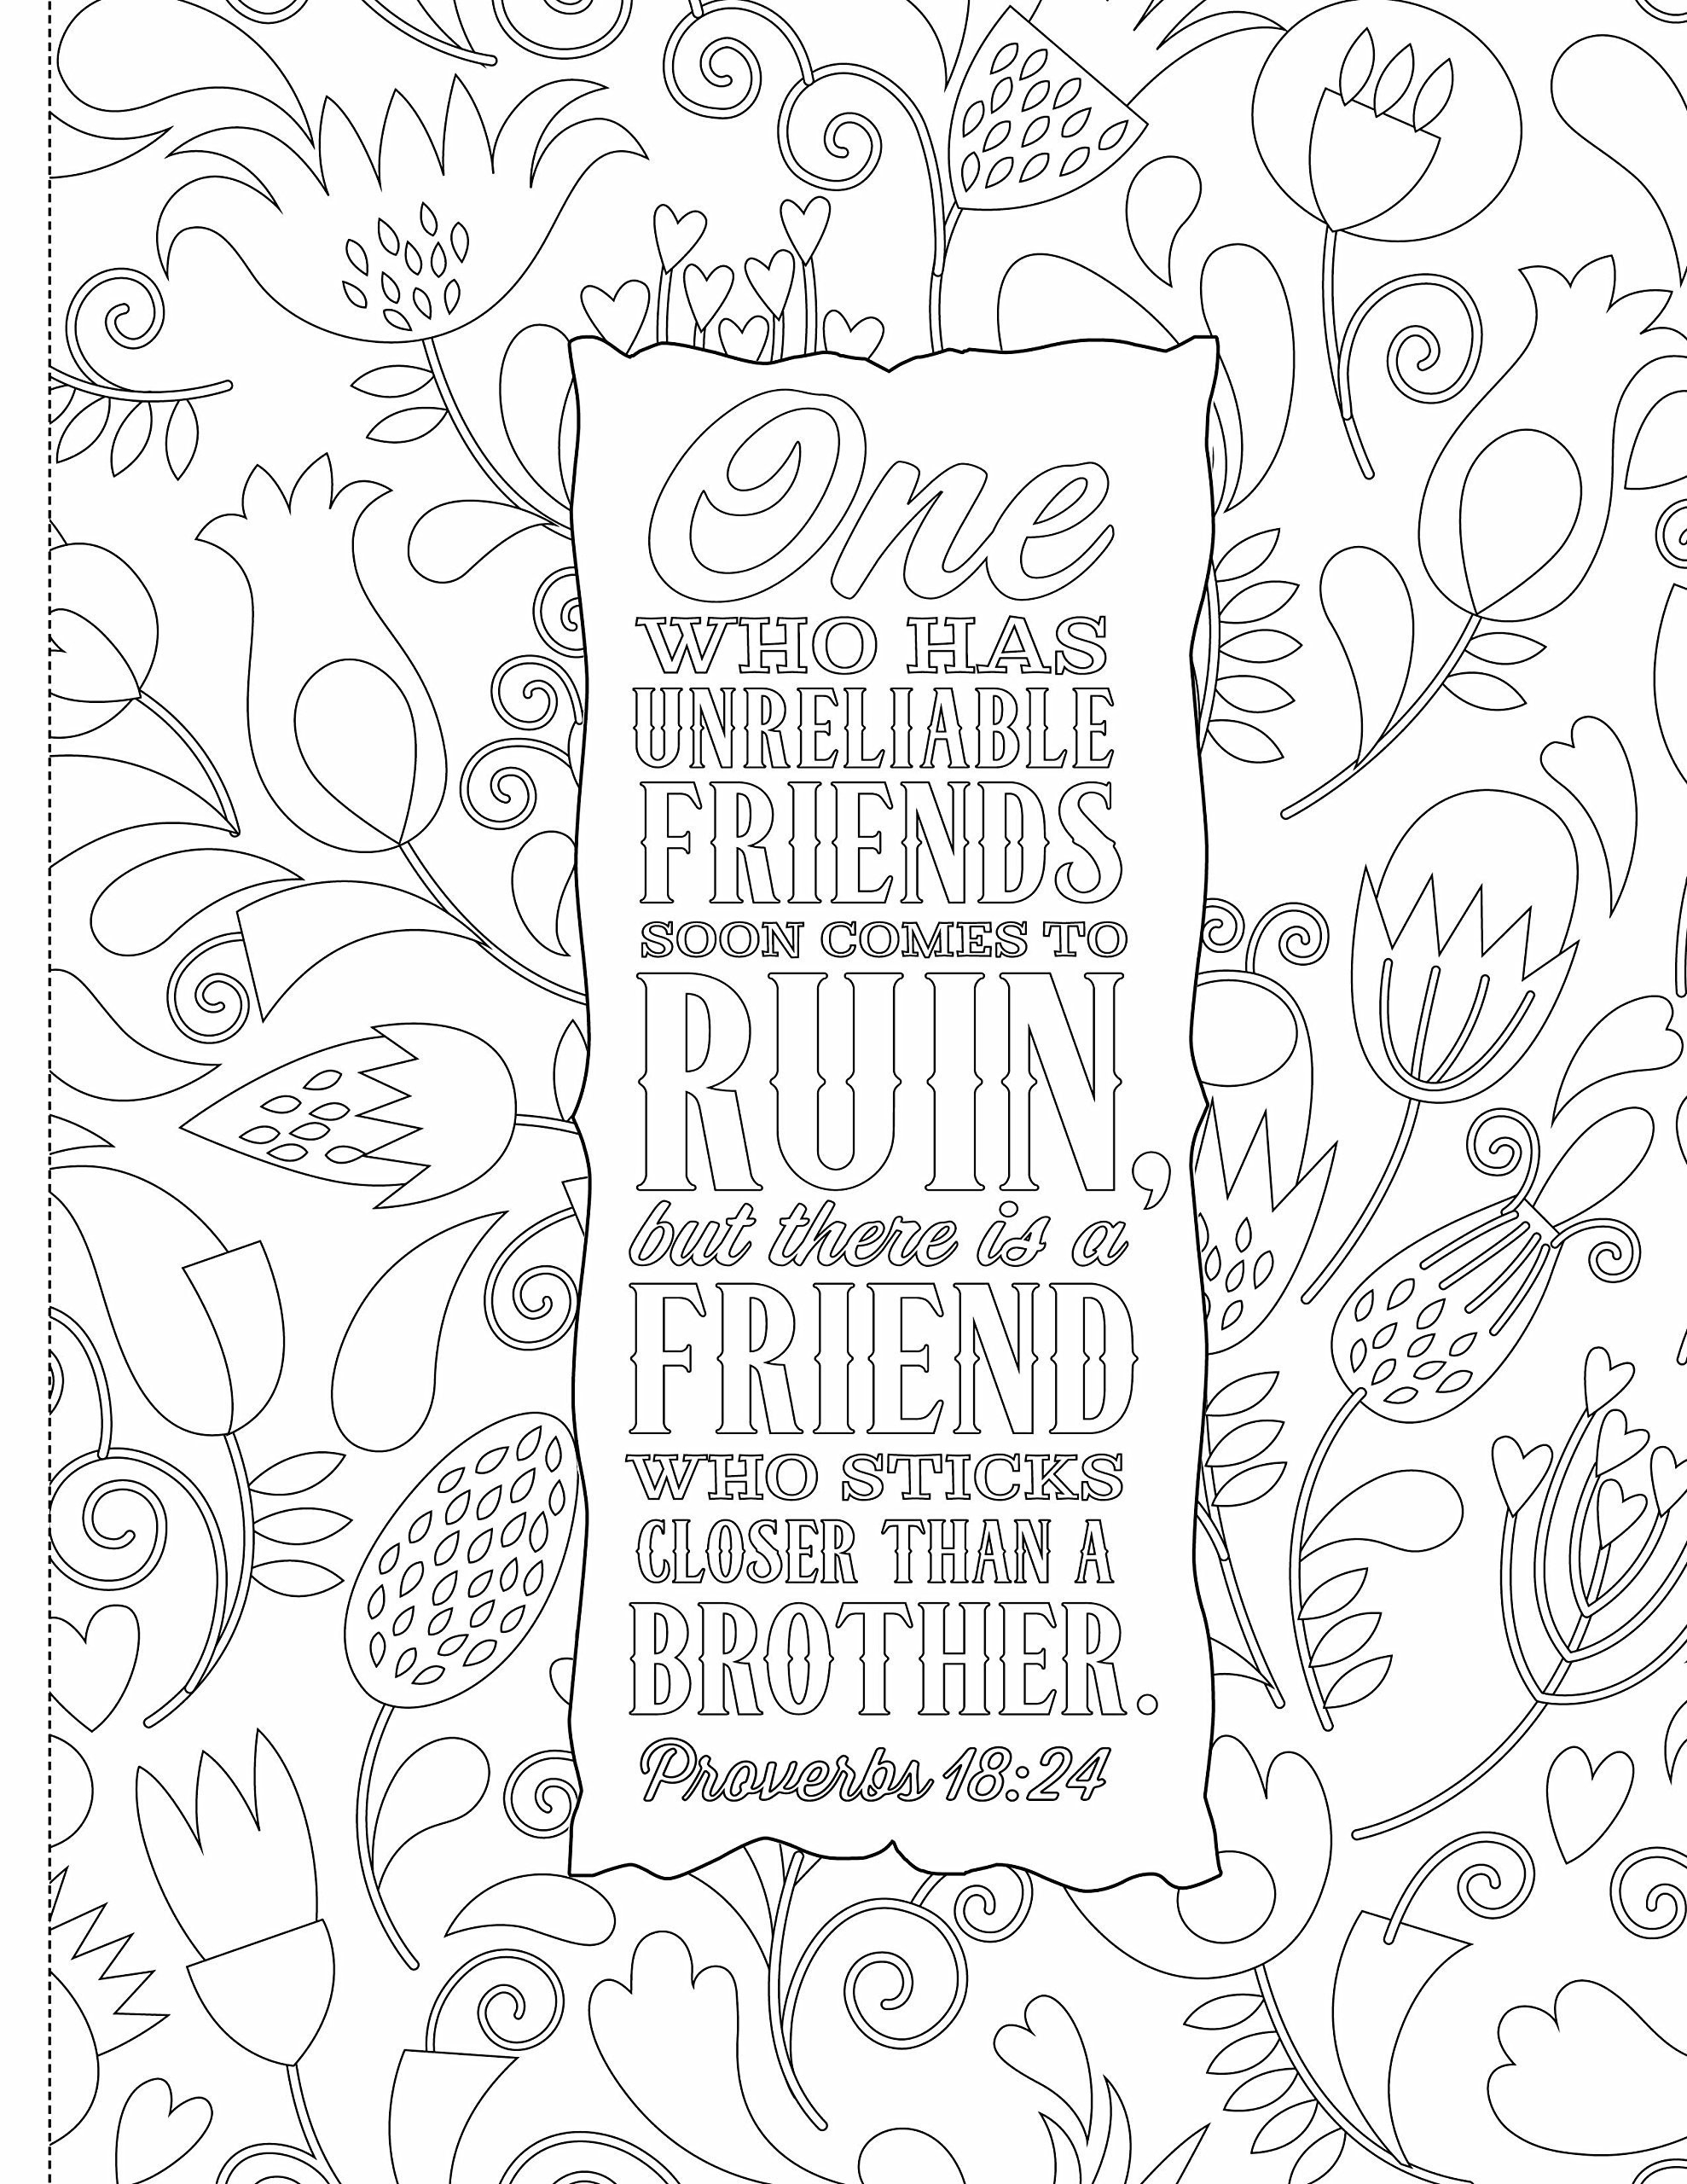 preschool bible coloring pages Download-Preschool Bible Coloring Pages New Coloring Page for Adult Od Kids Simple Floral Heart with Text 1-t